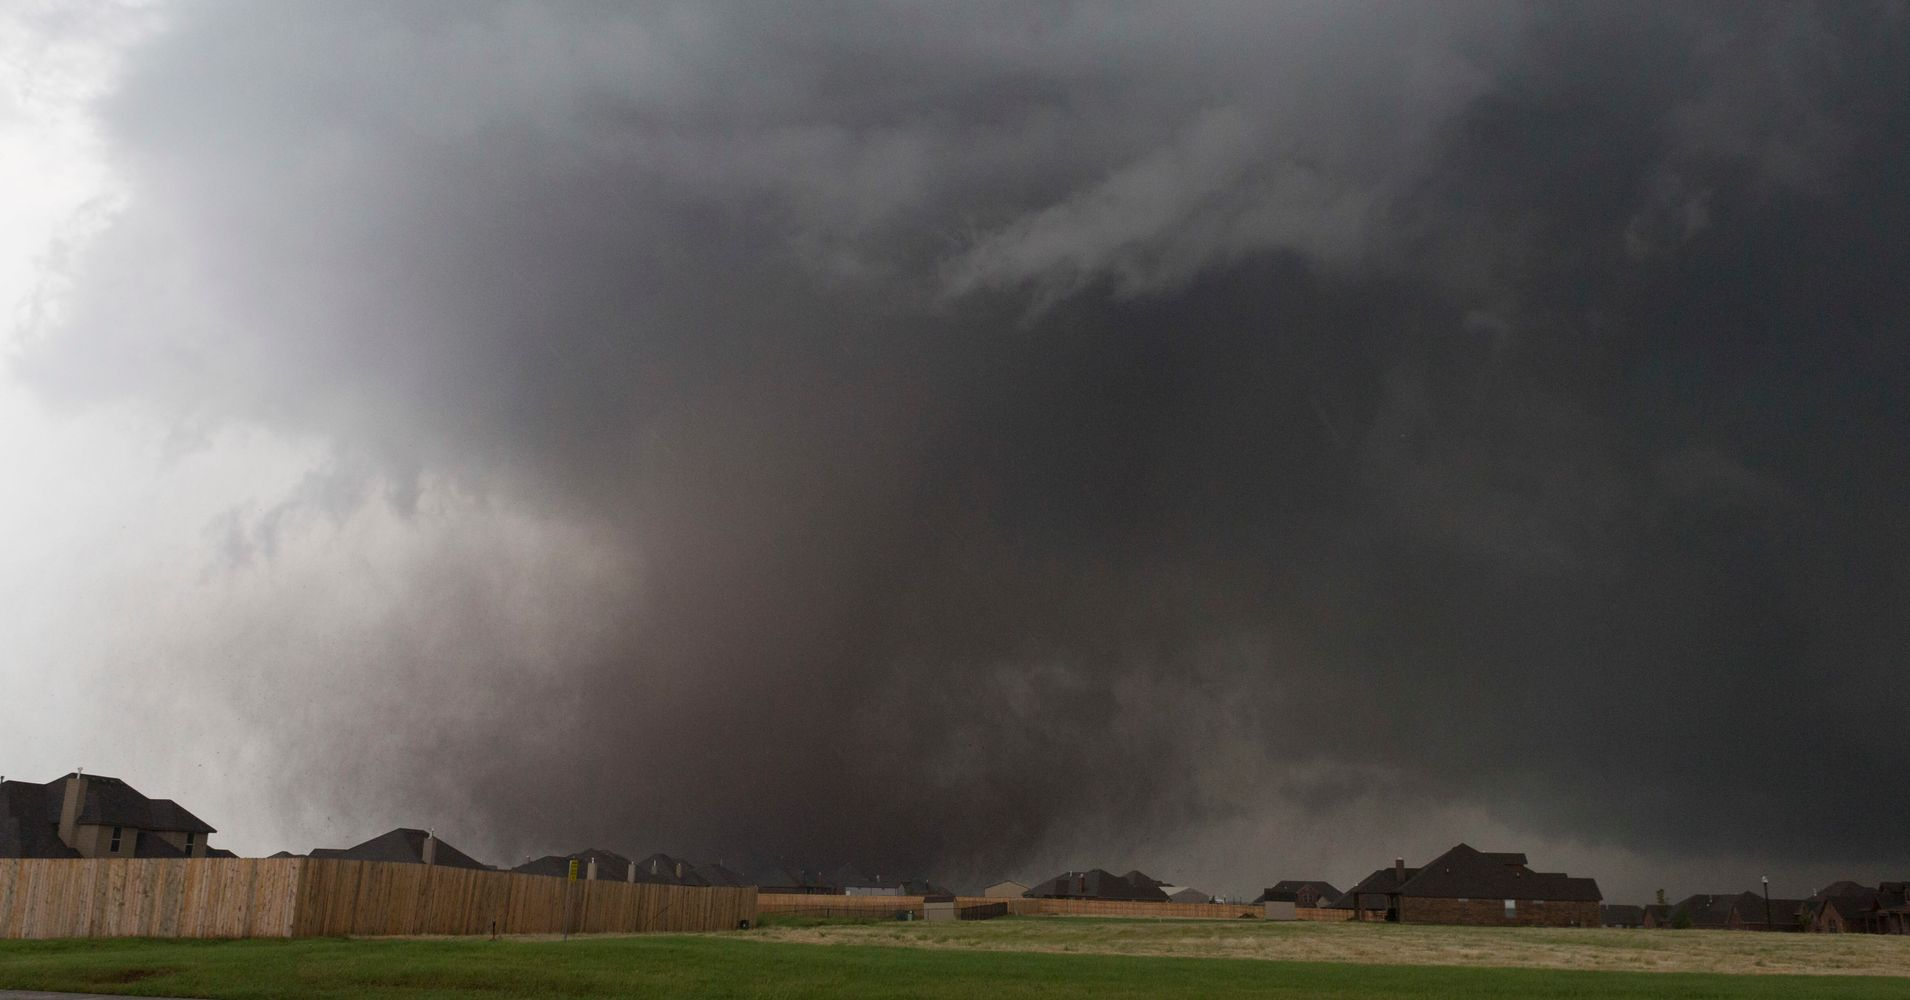 Another Round Of Severe Weather Forecast For Oklahoma, Texas